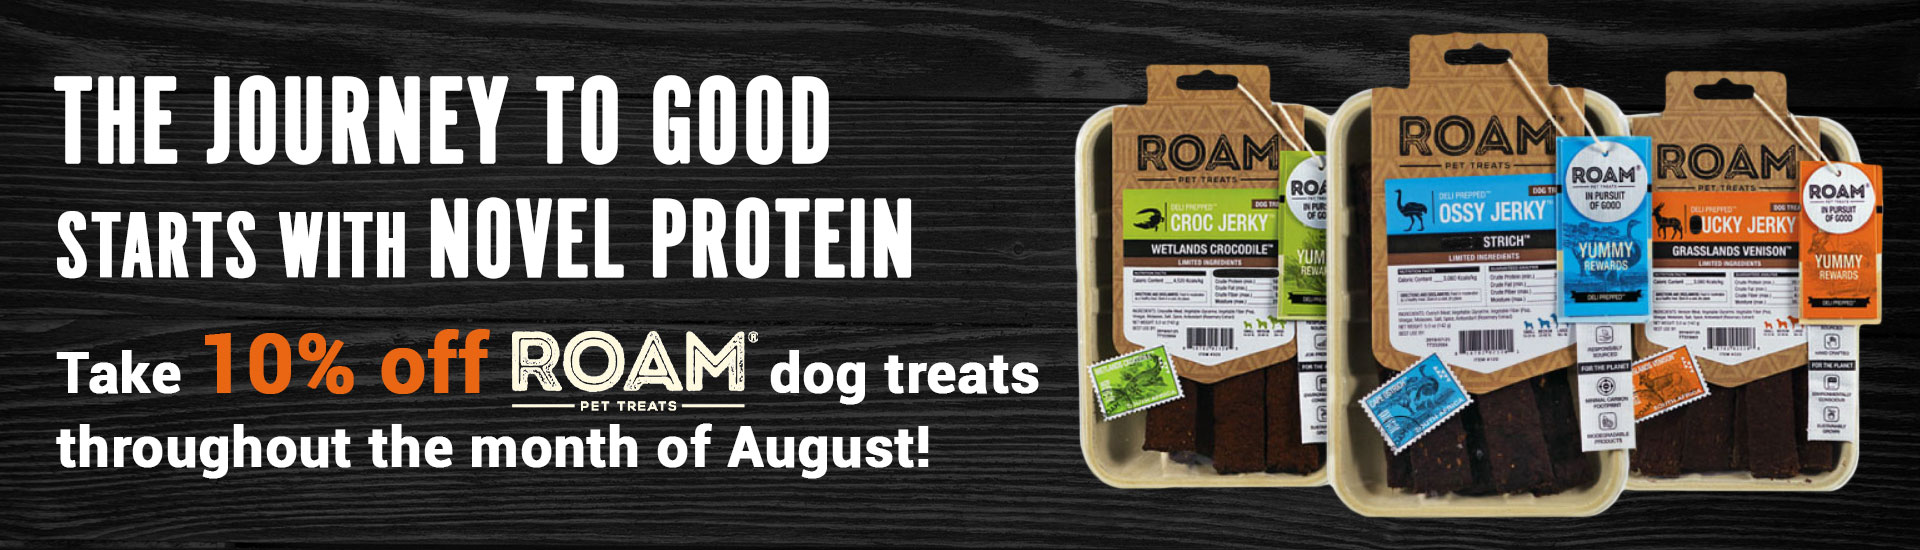 The journey to good starts with Novel Protein. Take 10% off ROAM® dog treats throughout the month of August!